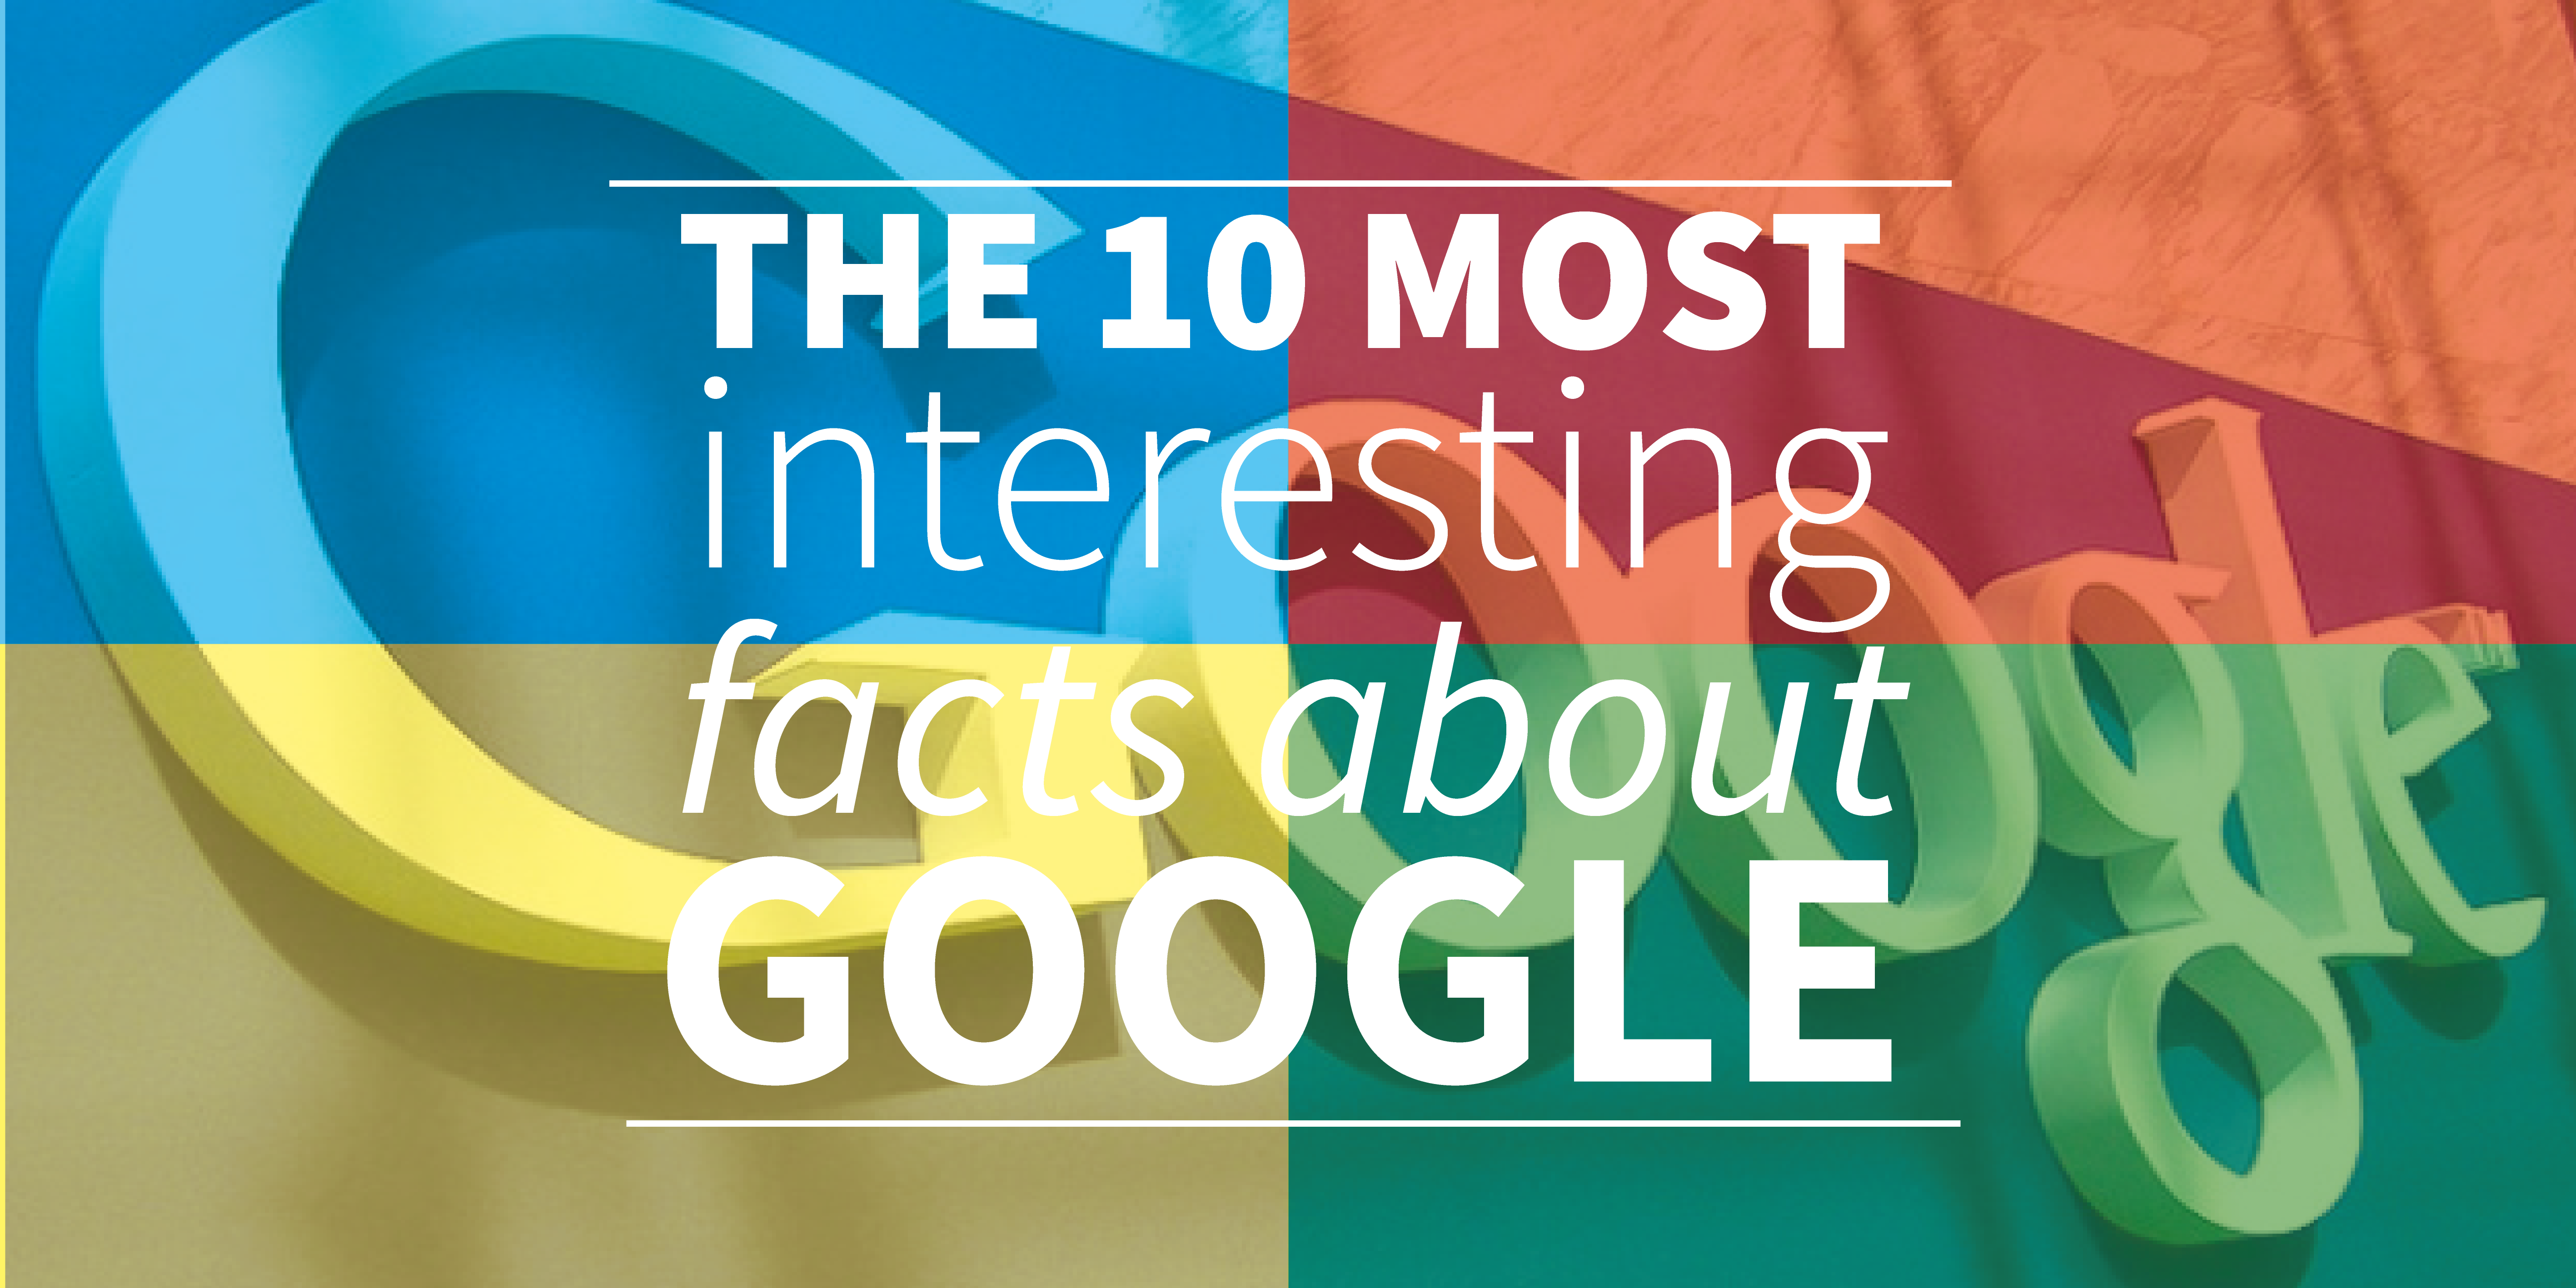 Most Interesting Facts >> The 10 Most Interesting And Funny Facts About Google